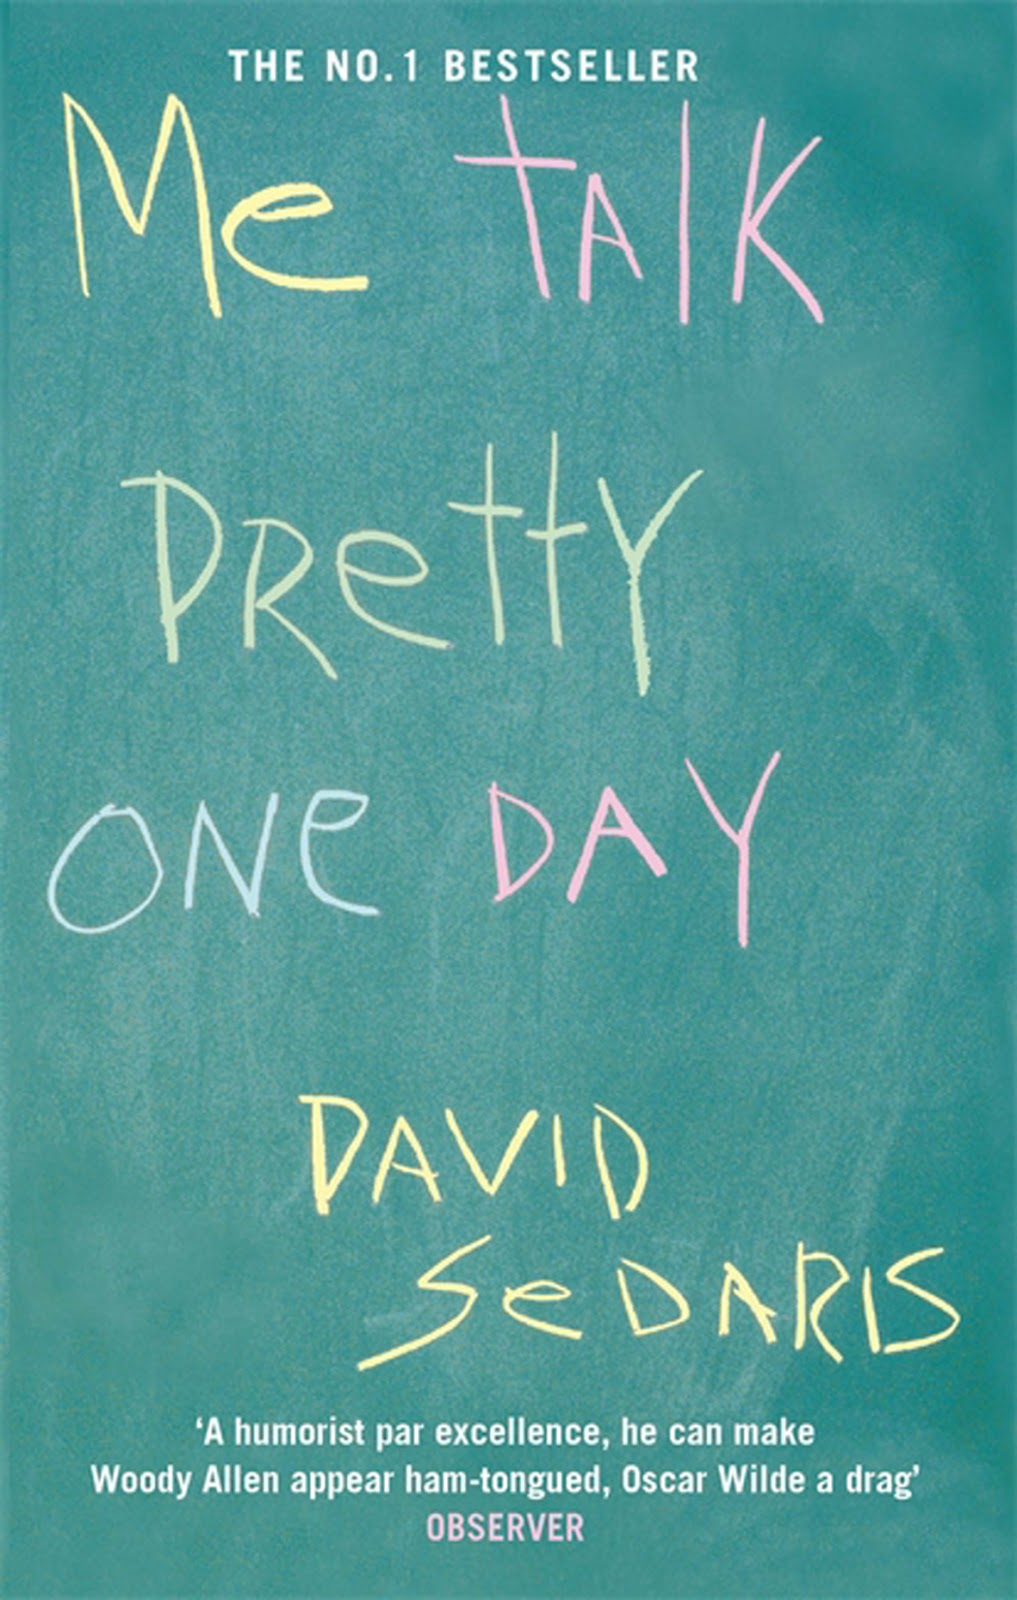 david sedaris essay china